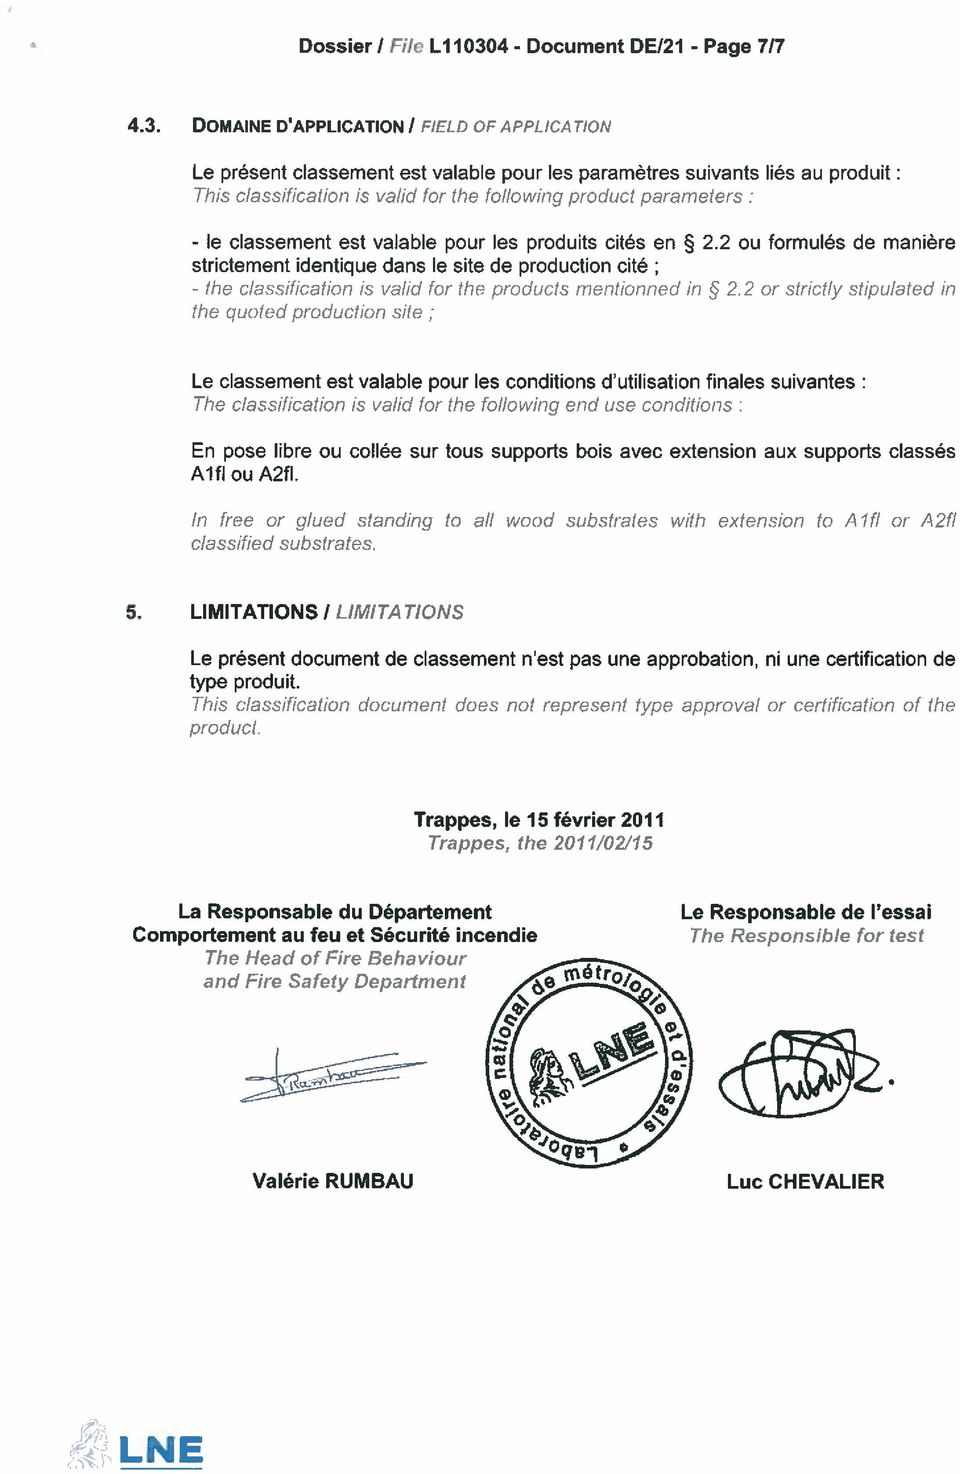 DOMAINE DAPPLICATION I FIELD 0F APPLICATION Le présent classement est valable pour les paramètres suivants liés au produit: This classification is valid for the folio wing produci parameters: - le